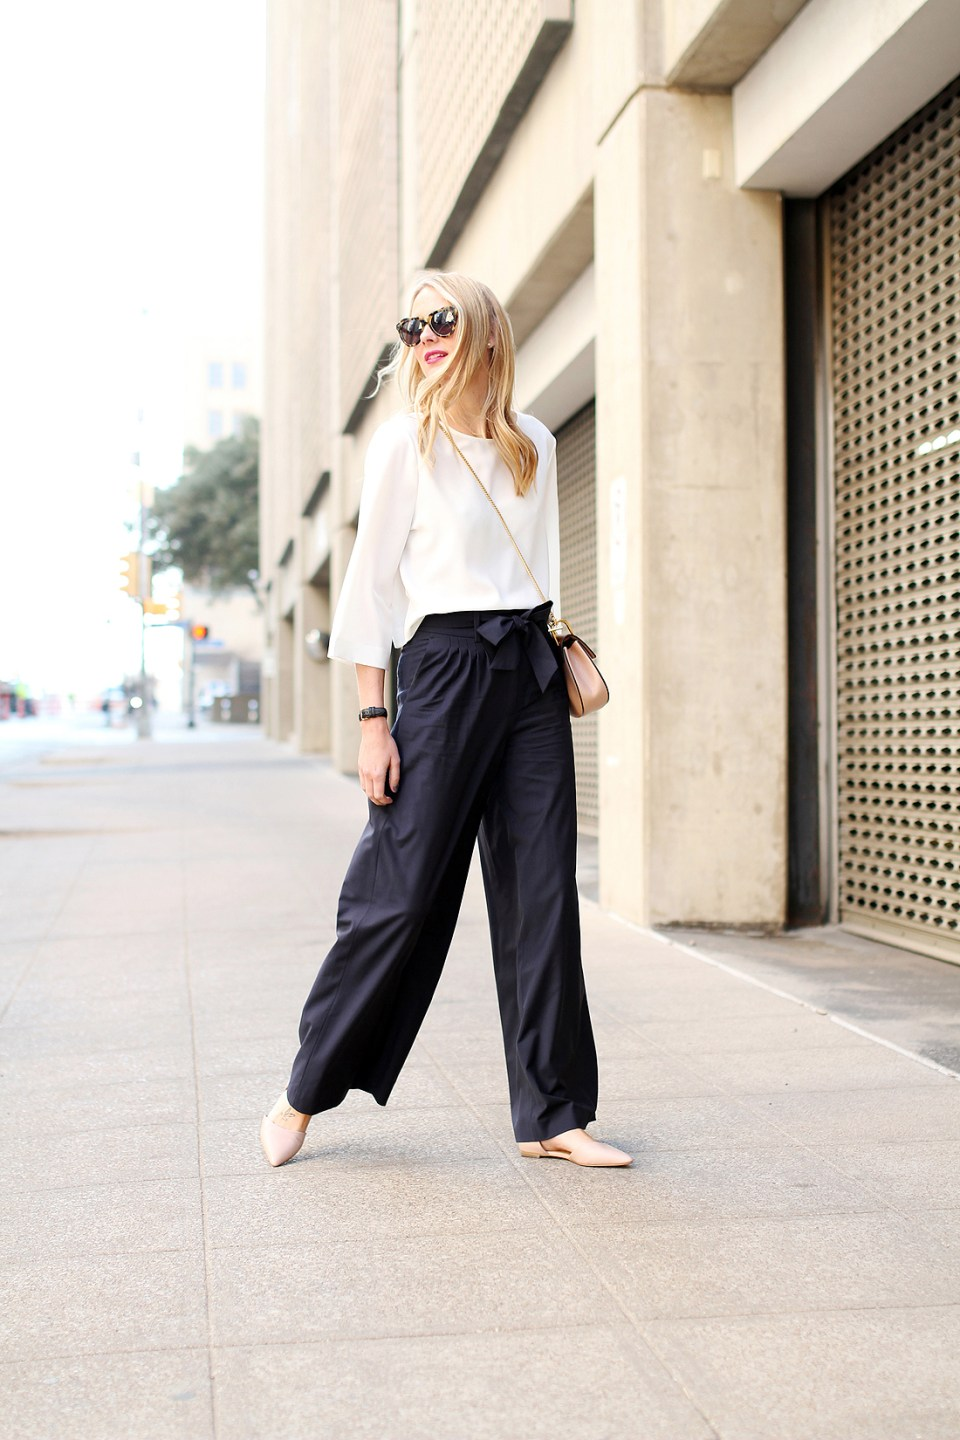 The Wide Leg Pants with Flats Trend—a Super Fashion ...